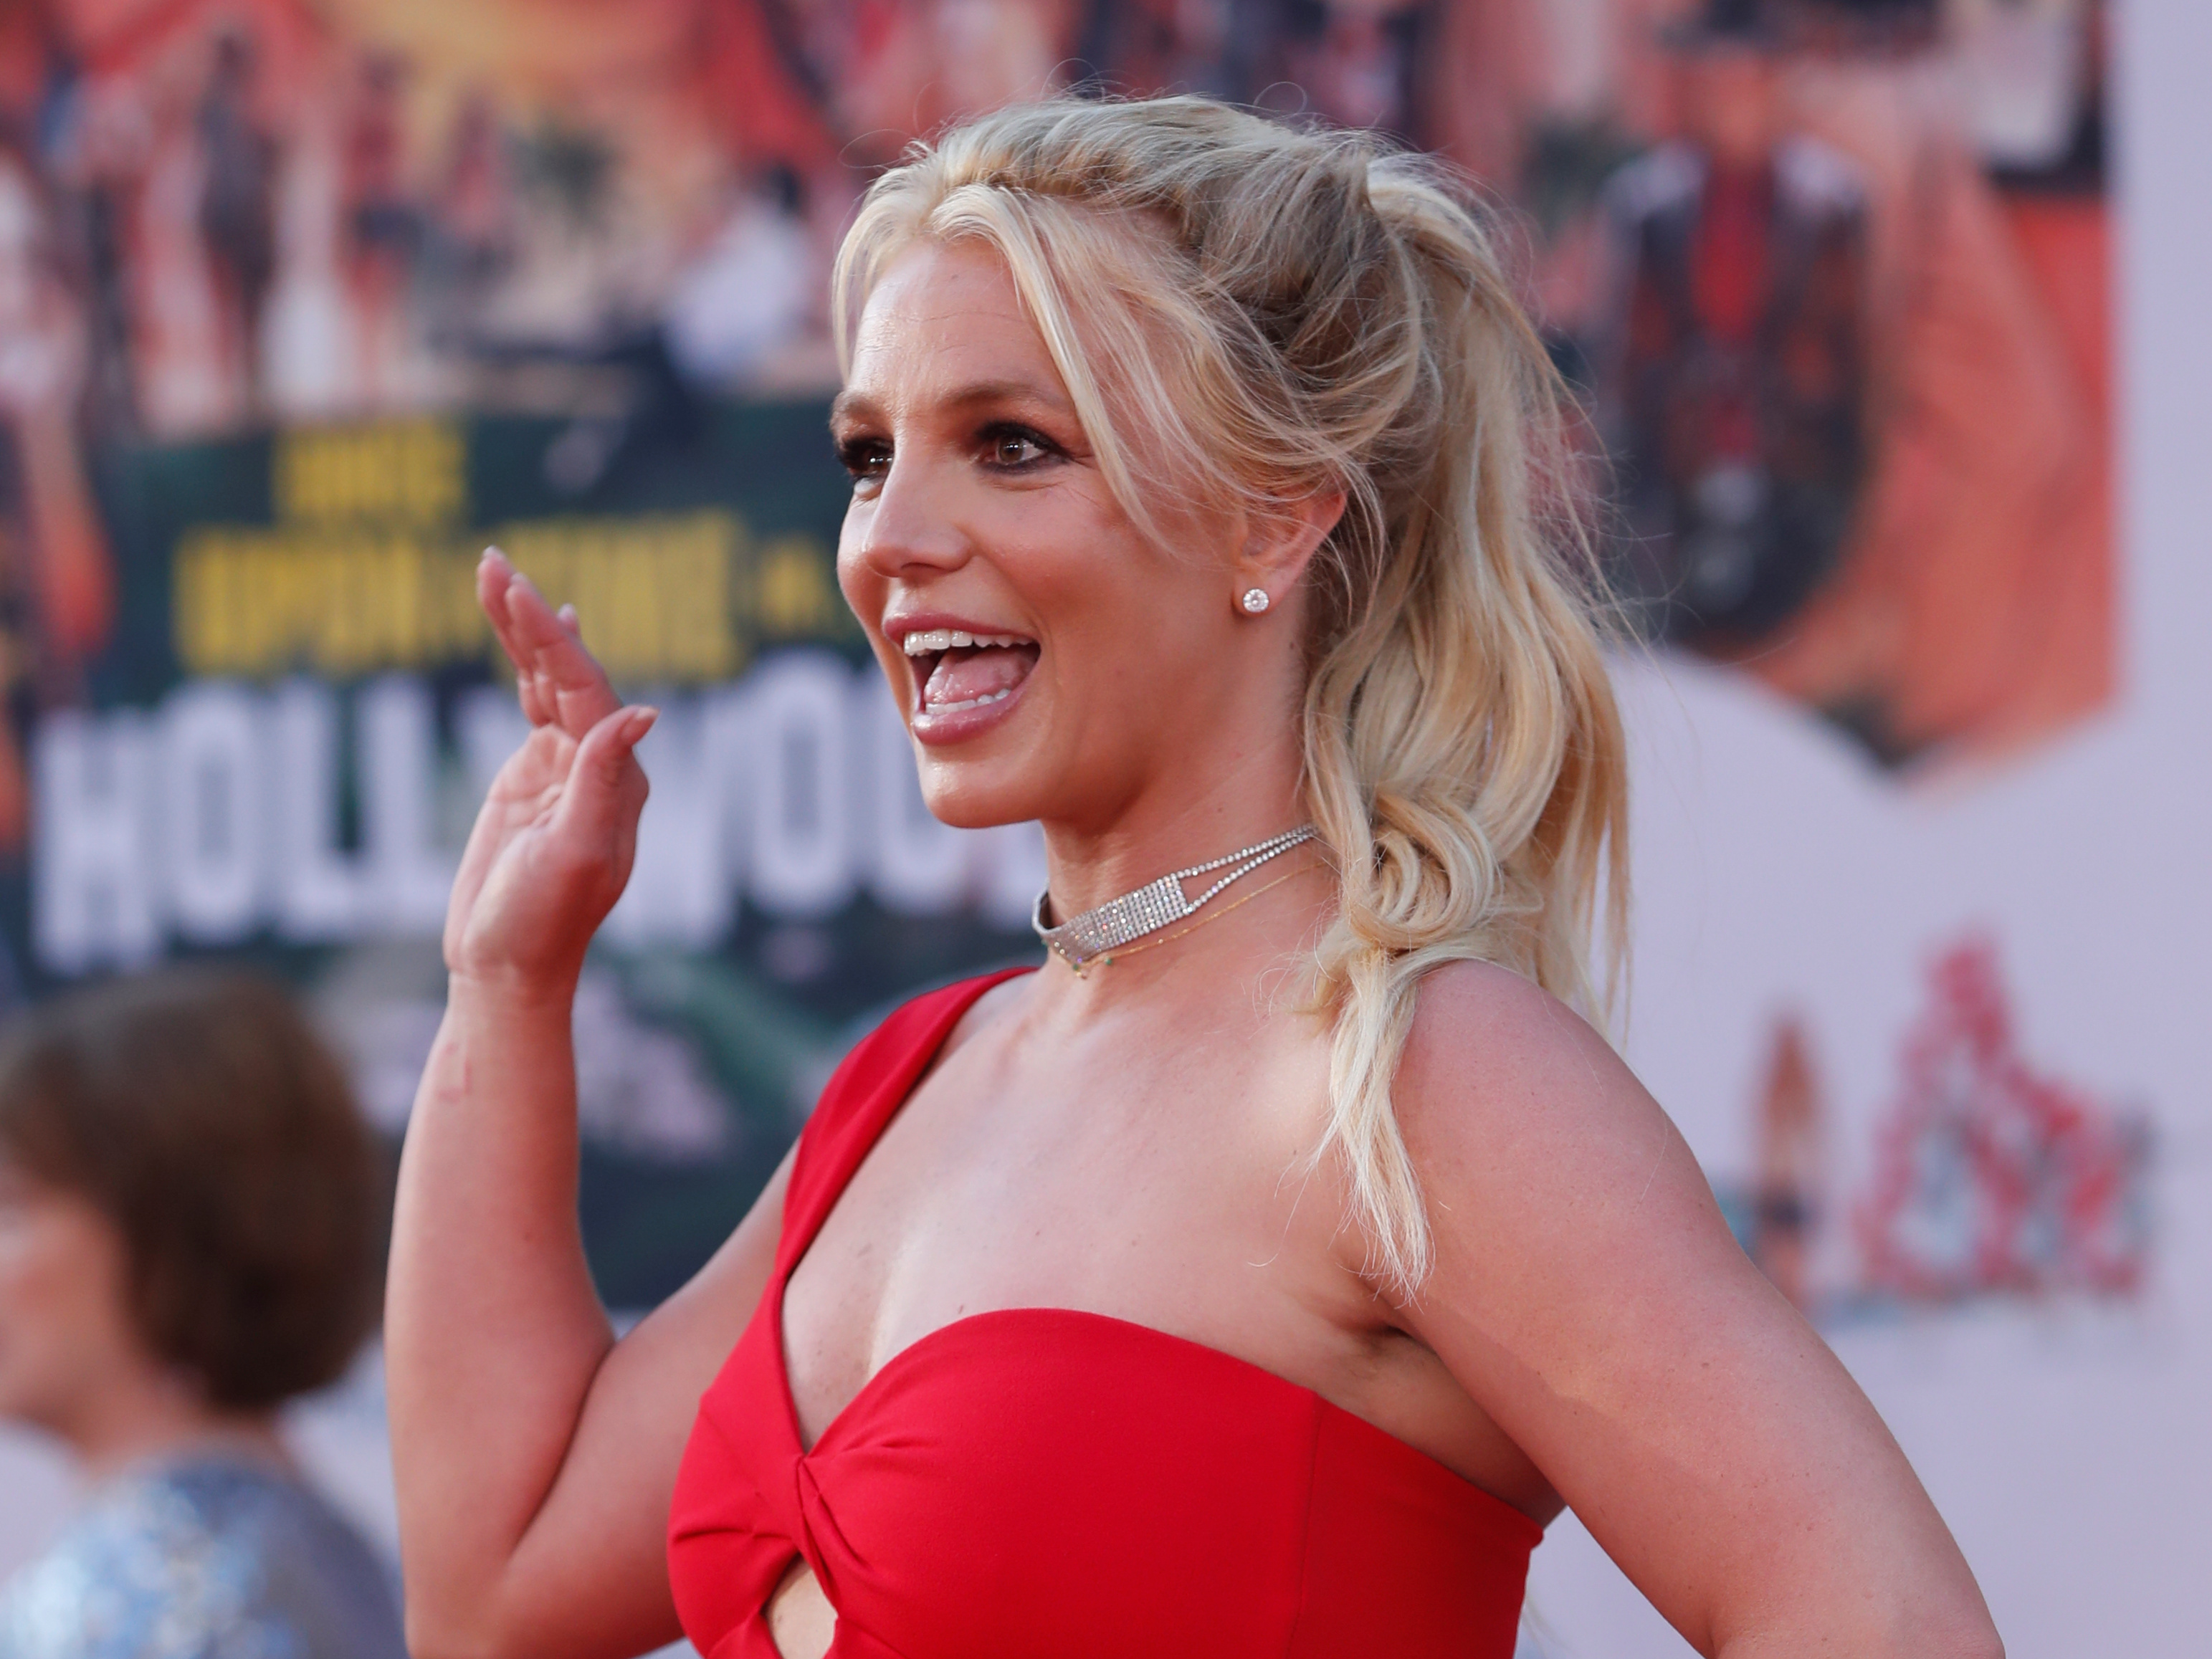 Britney Spears hasn't legally controlled her $59 million fortune in 12 years. Here is how the pop icon makes and spends her cash, from Target looking out journeys to California mansions.